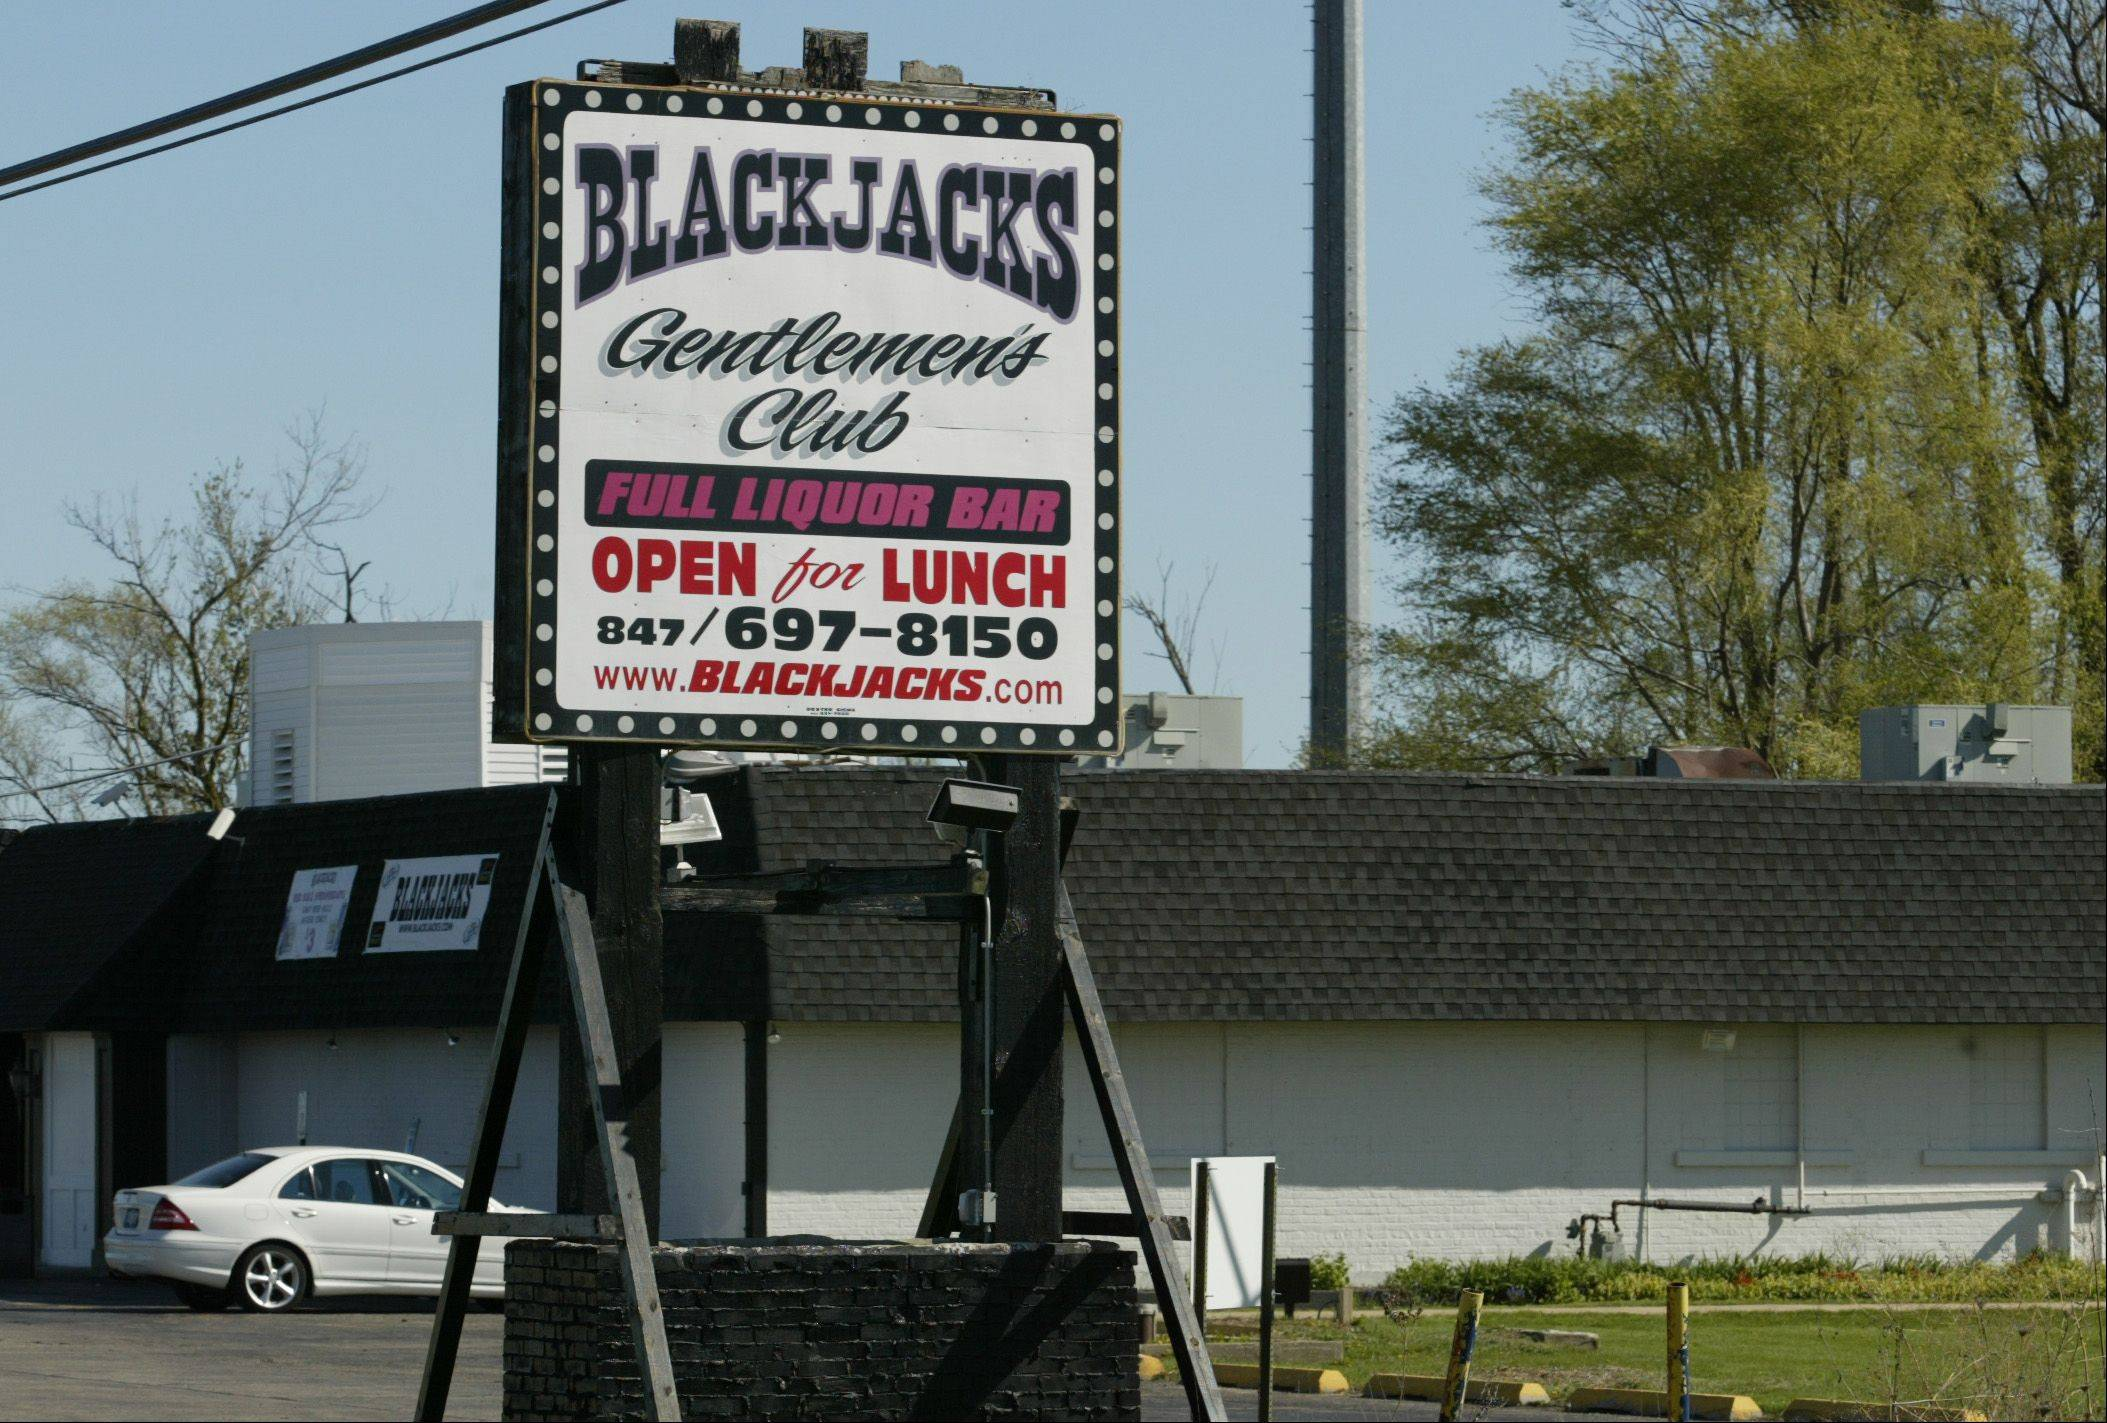 Blackjacks Gentlemen's Club near South Elgin no longer serves alcohol, and potential new owners Tuesday were denied a liquor license from the Kane County Board.